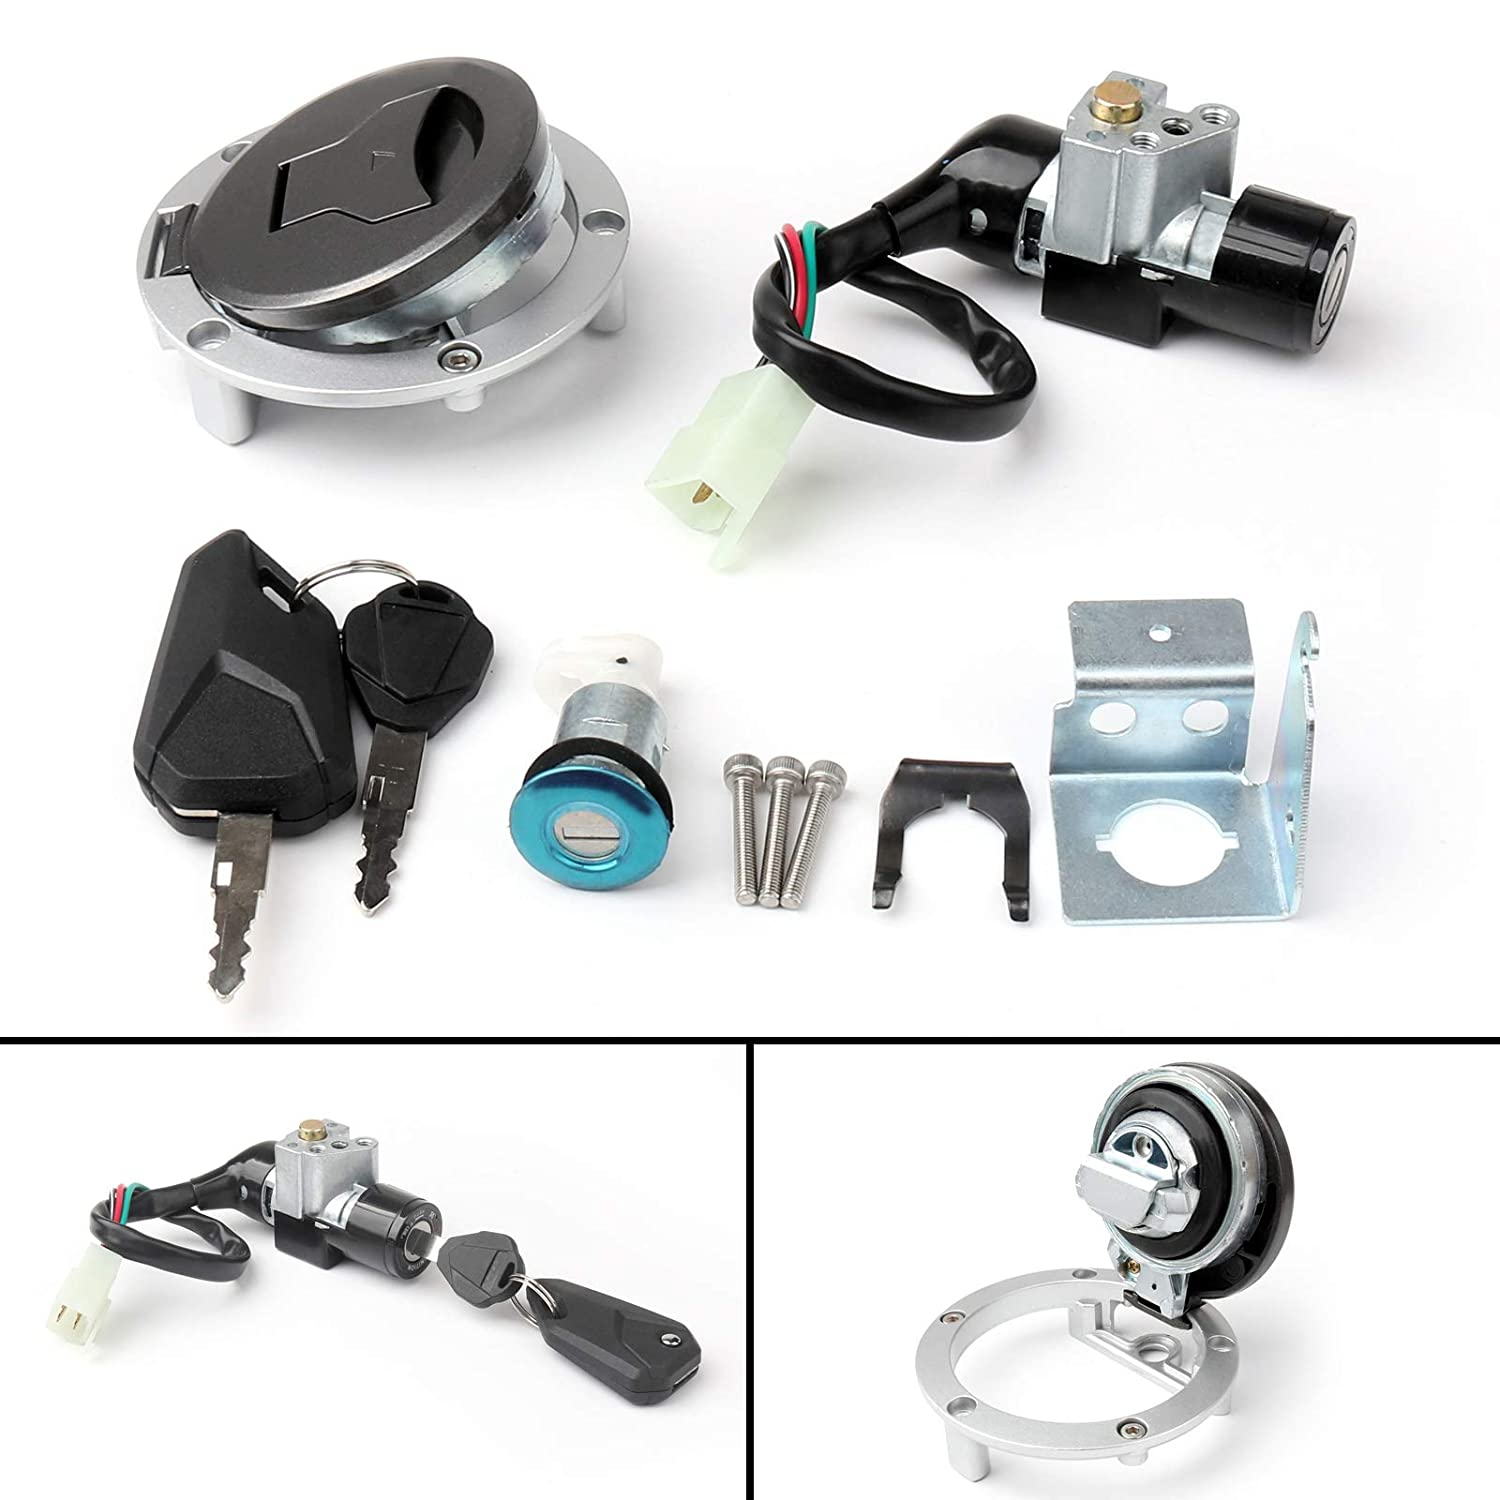 Artudatech Ignition Switch Seat Gas Cap Cover Lock Key Set For Honda GROM MSX125SF 2016